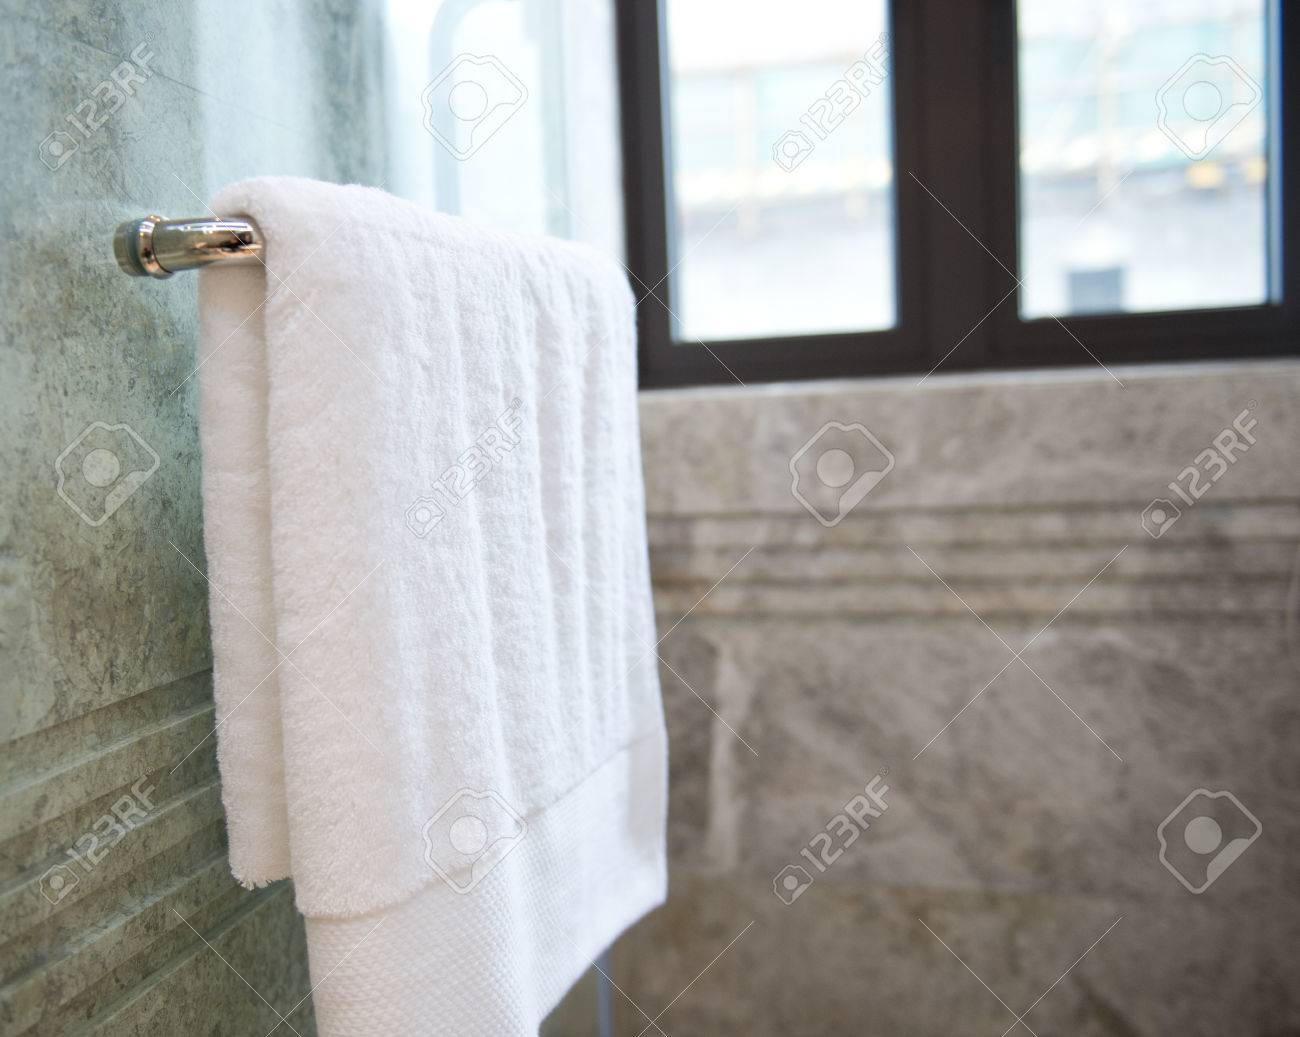 Exceptional Clean White Towels In Bathroom Prepared To Use. Stock Photo   23087671